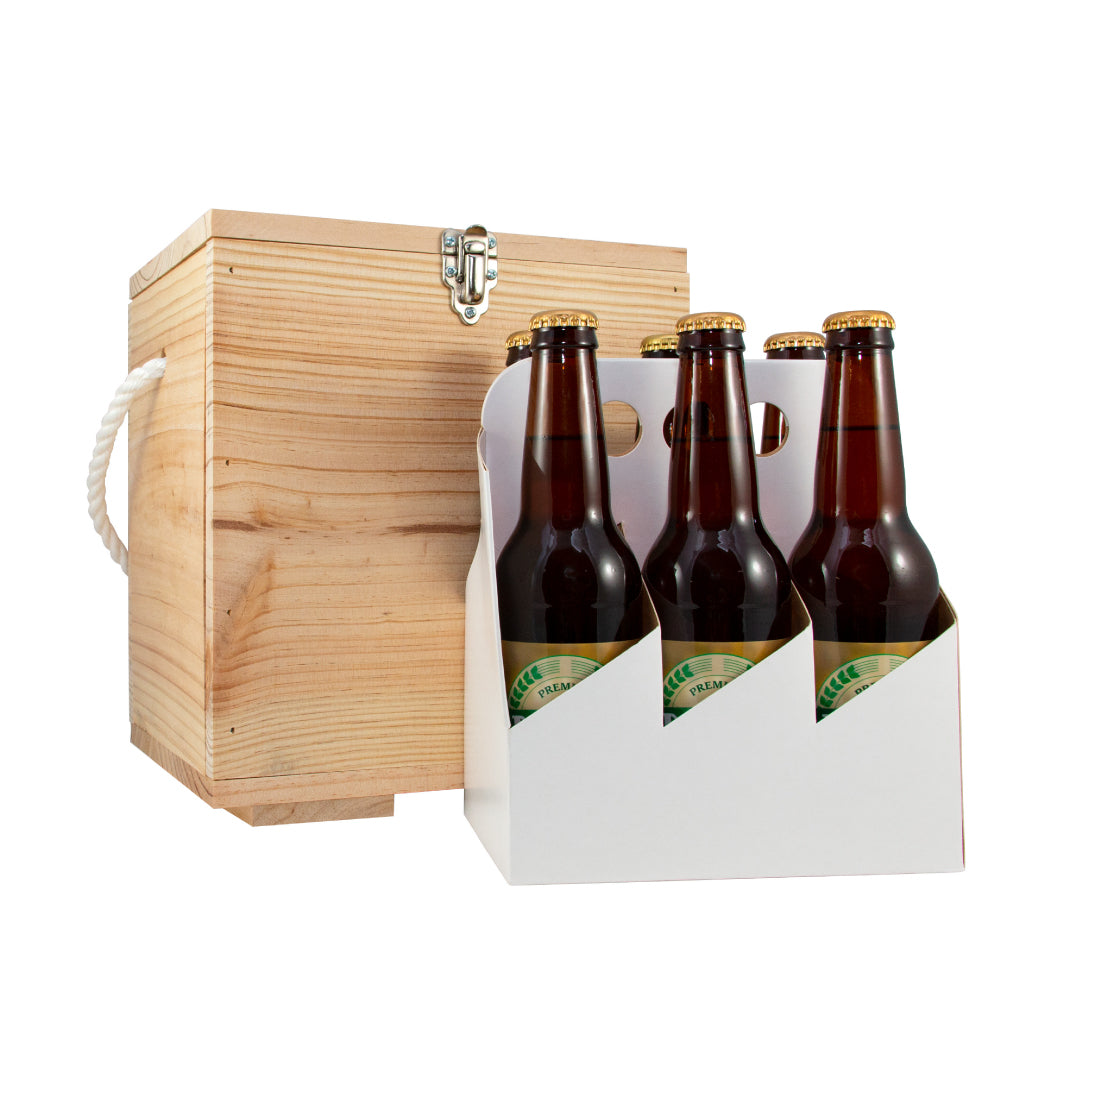 Craft Pale Ale - Wooden Beer Box - 330ml - 6 pack